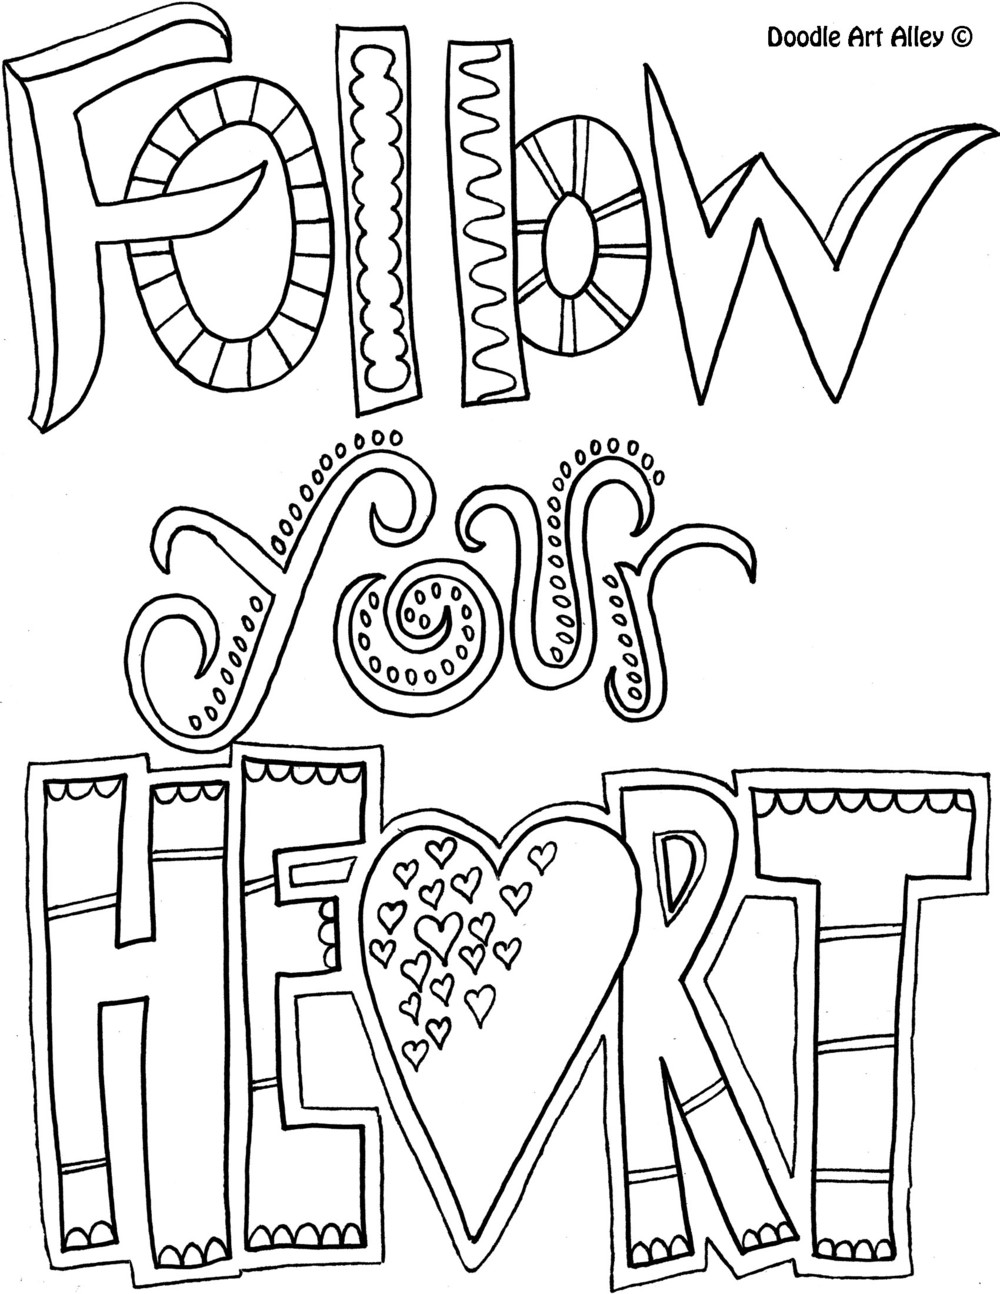 Become a coloring book enthusiast with doodle art alley for Positive quotes coloring pages